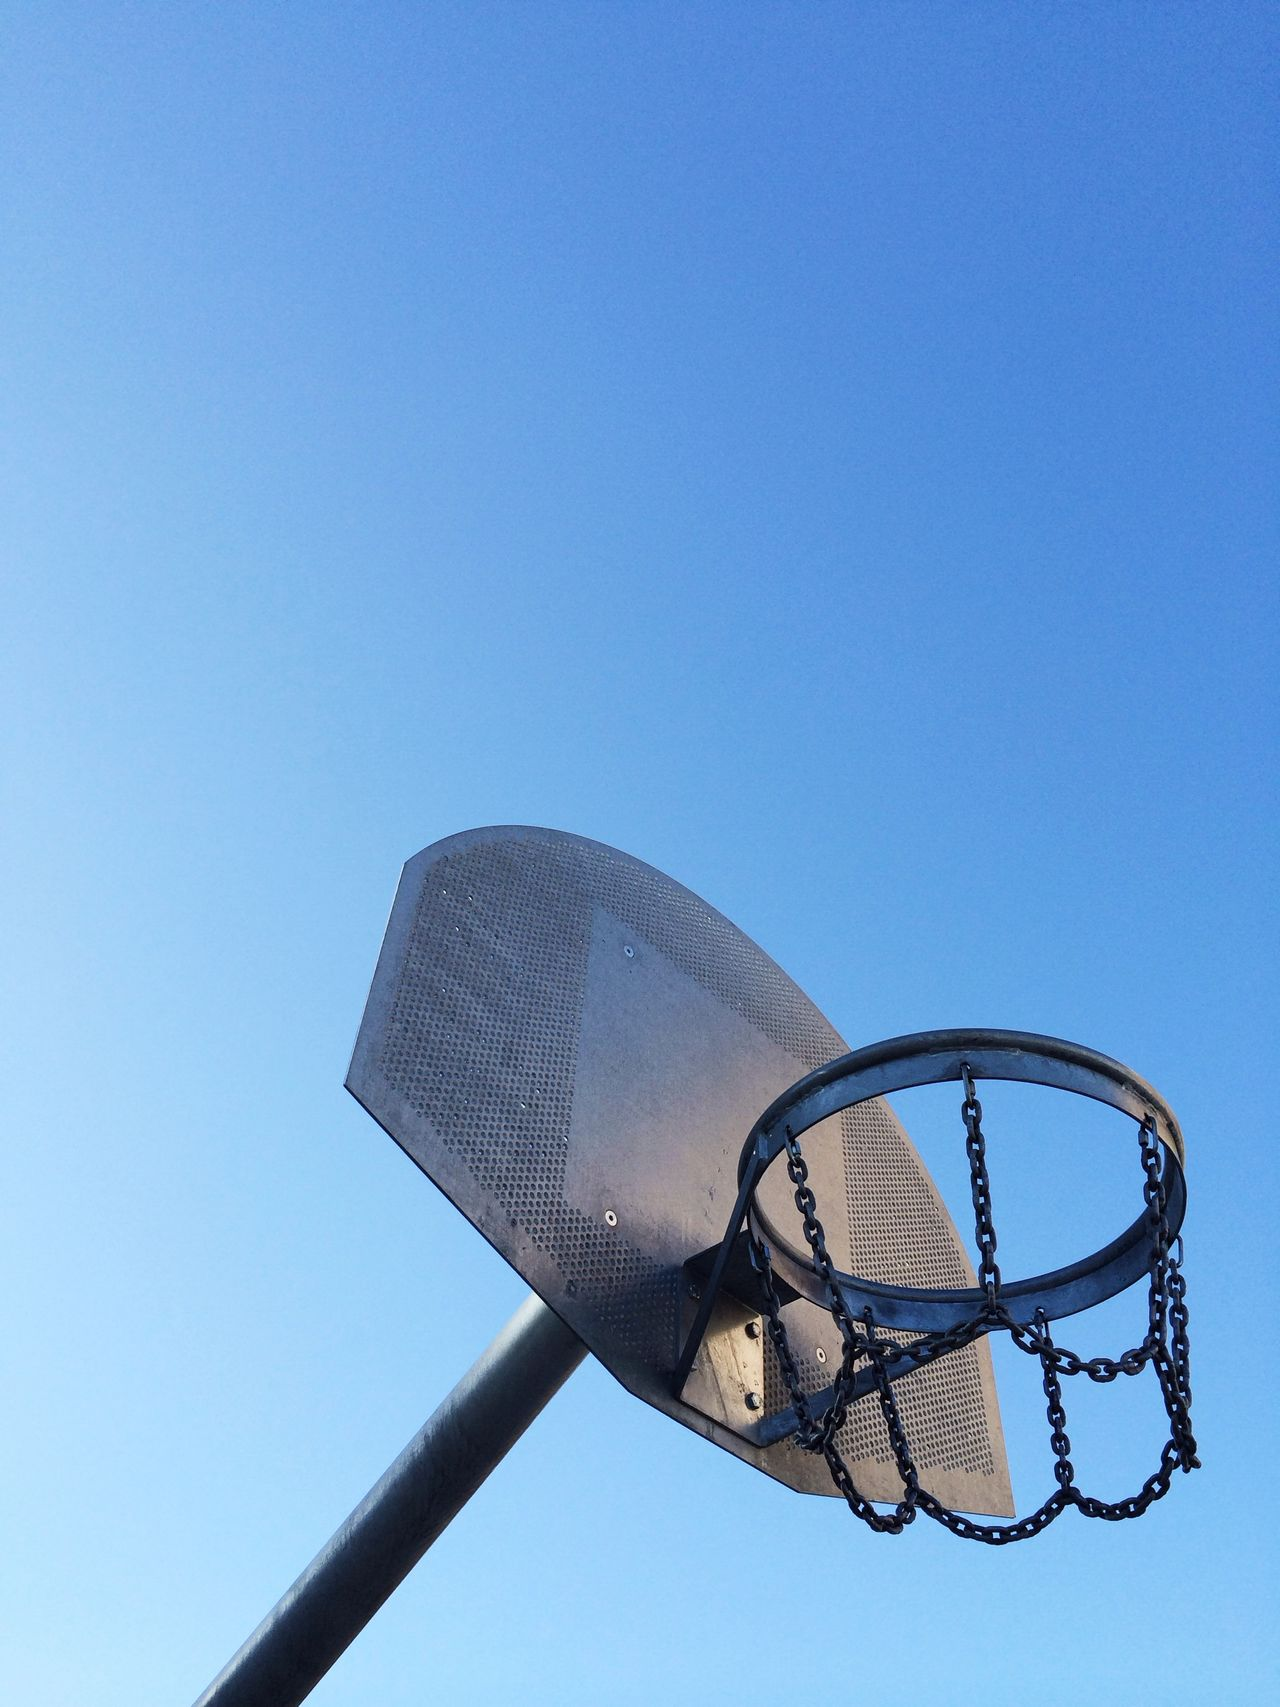 Beautiful stock photos of basketball, Basketball, Basketball Hoop, Blue, Clear Sky